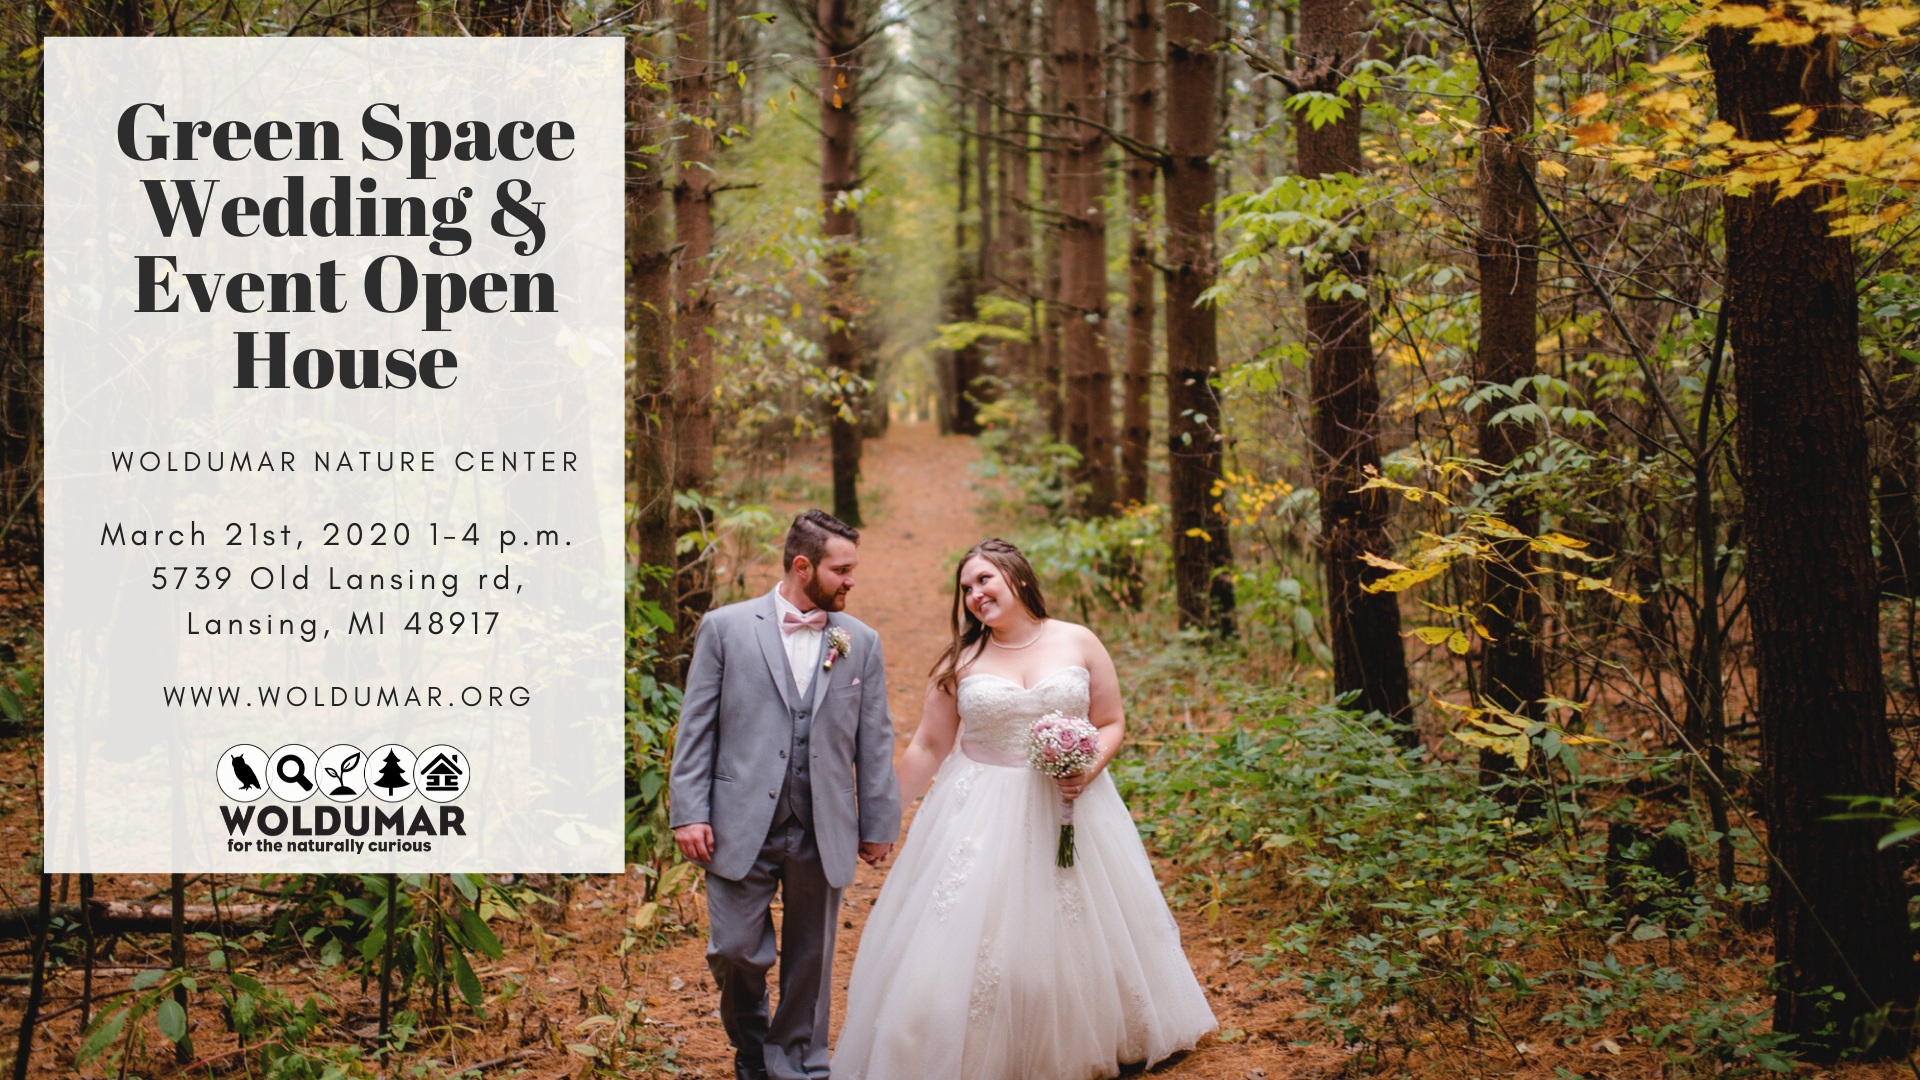 Green Space Wedding & Event Open House